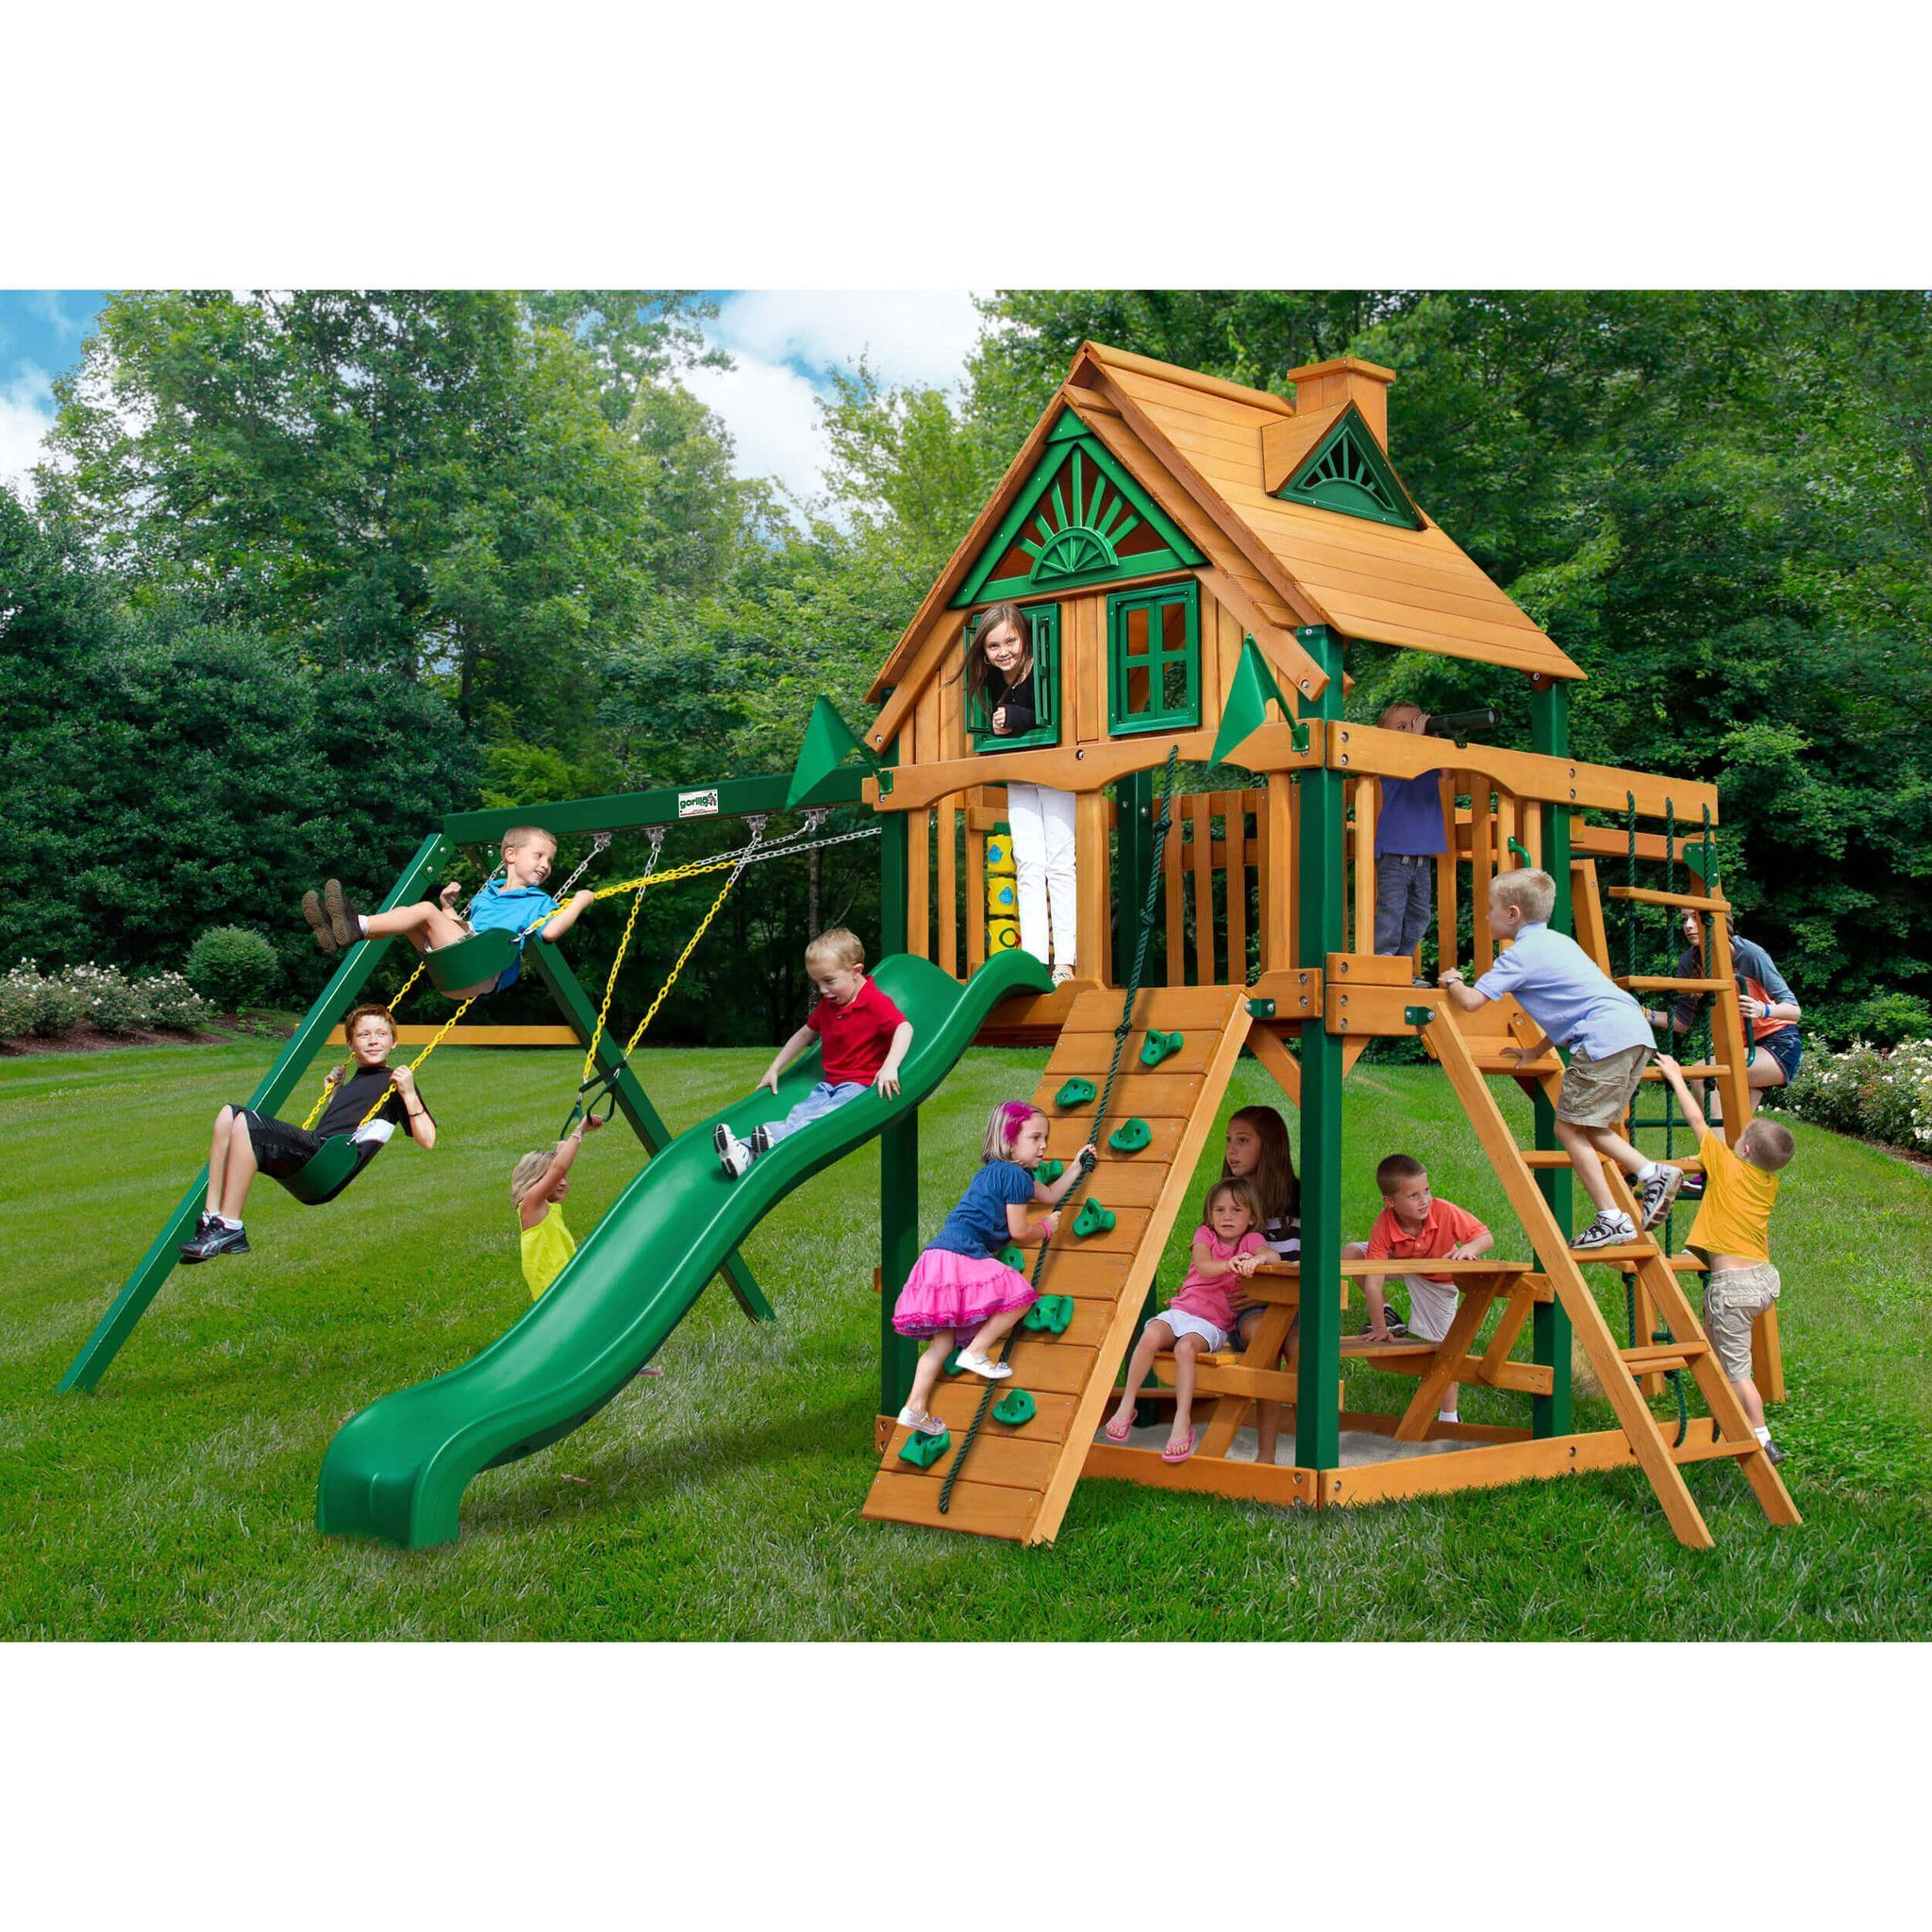 discovery w ct somerset post setideas decoration h backyard x set outdoor swing ideas wood